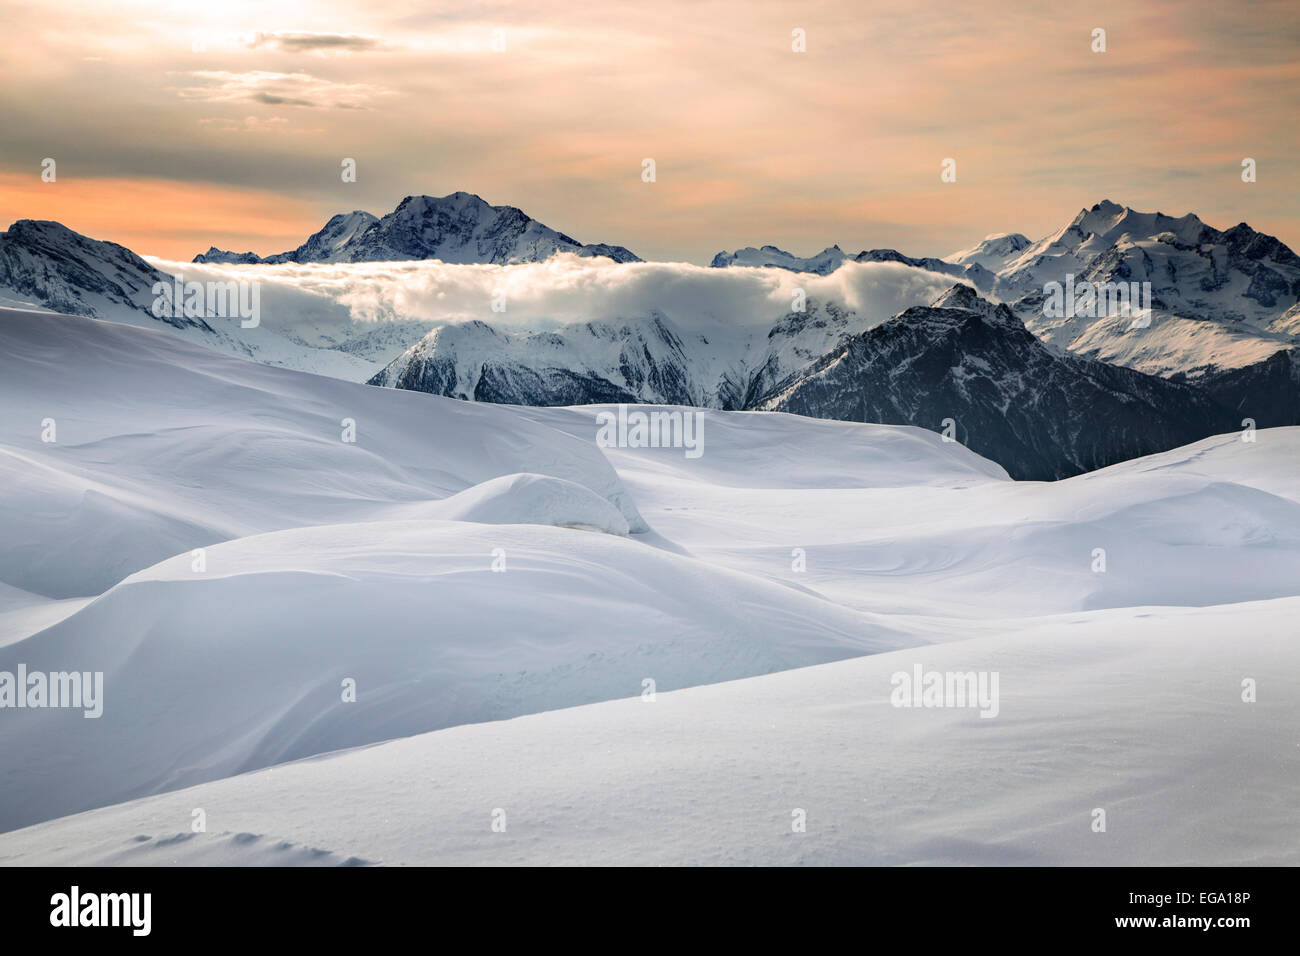 Sunset over snow covered Alpine mountains in winter in the Swiss Alps at Wallis / Valais, Switzerland - Stock Image